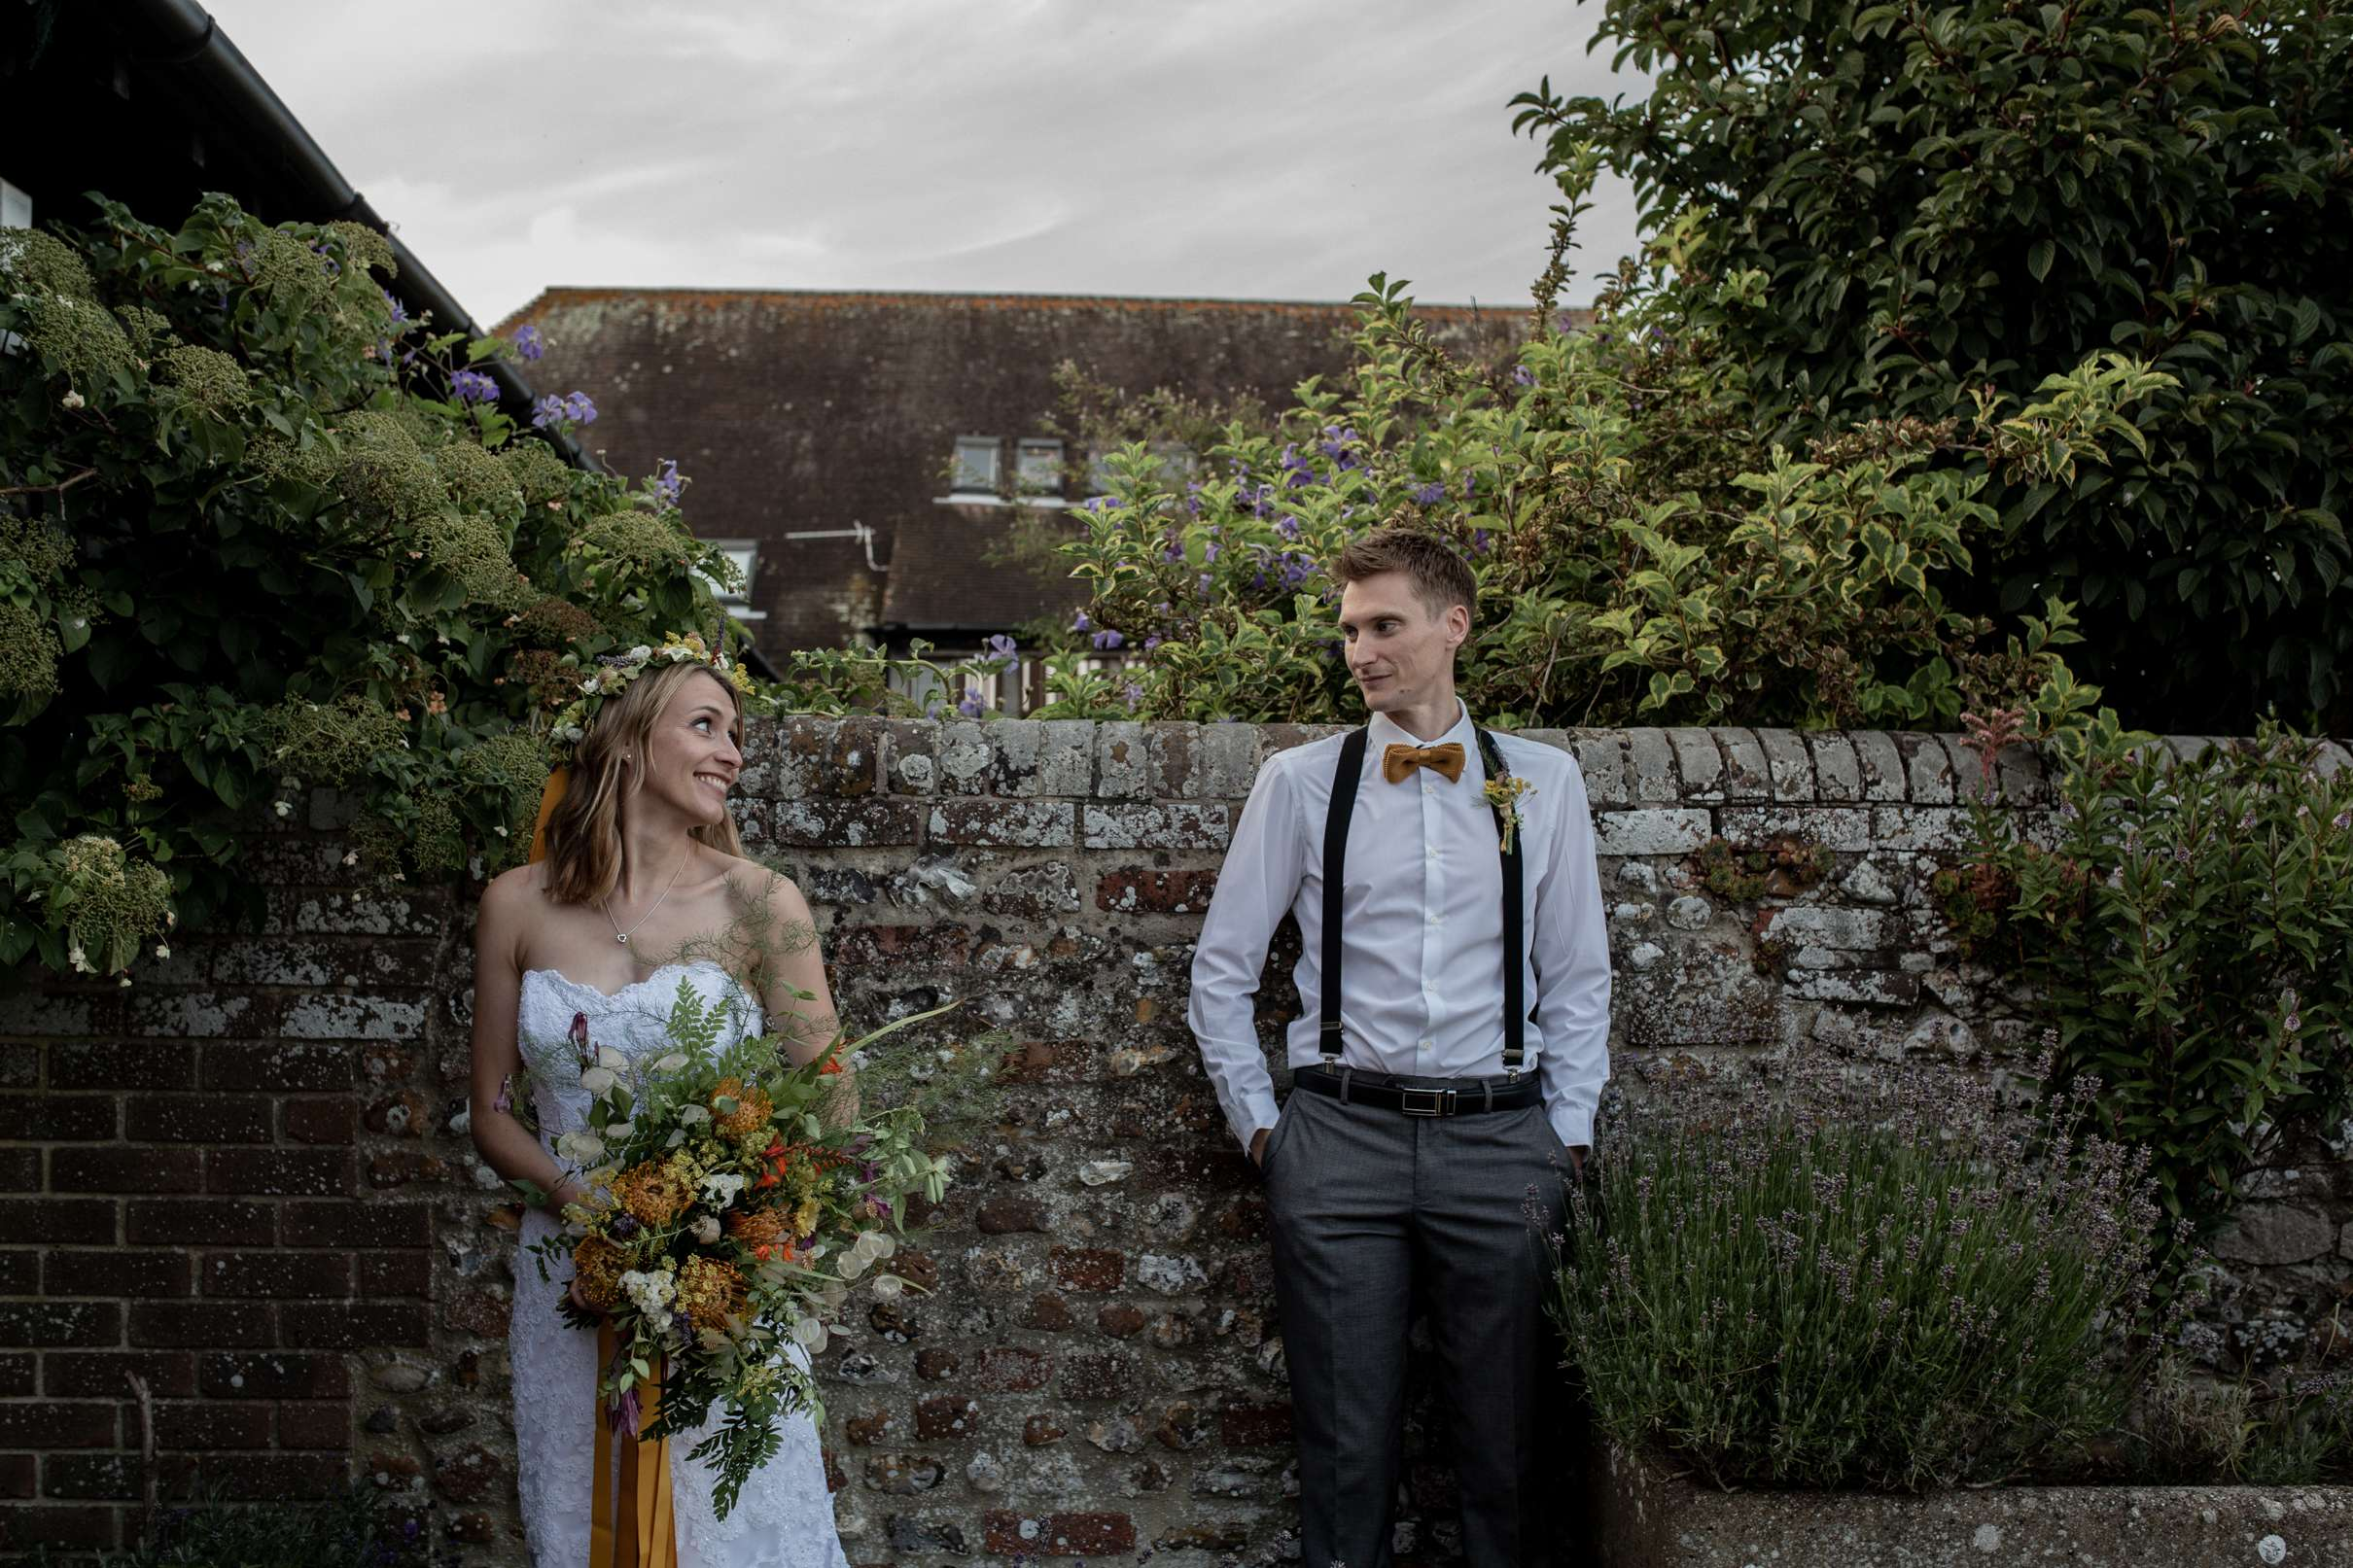 A wedding photo in Chichester of a bride and groom standing by a beautiful rustic wall, taken at Chidham barn